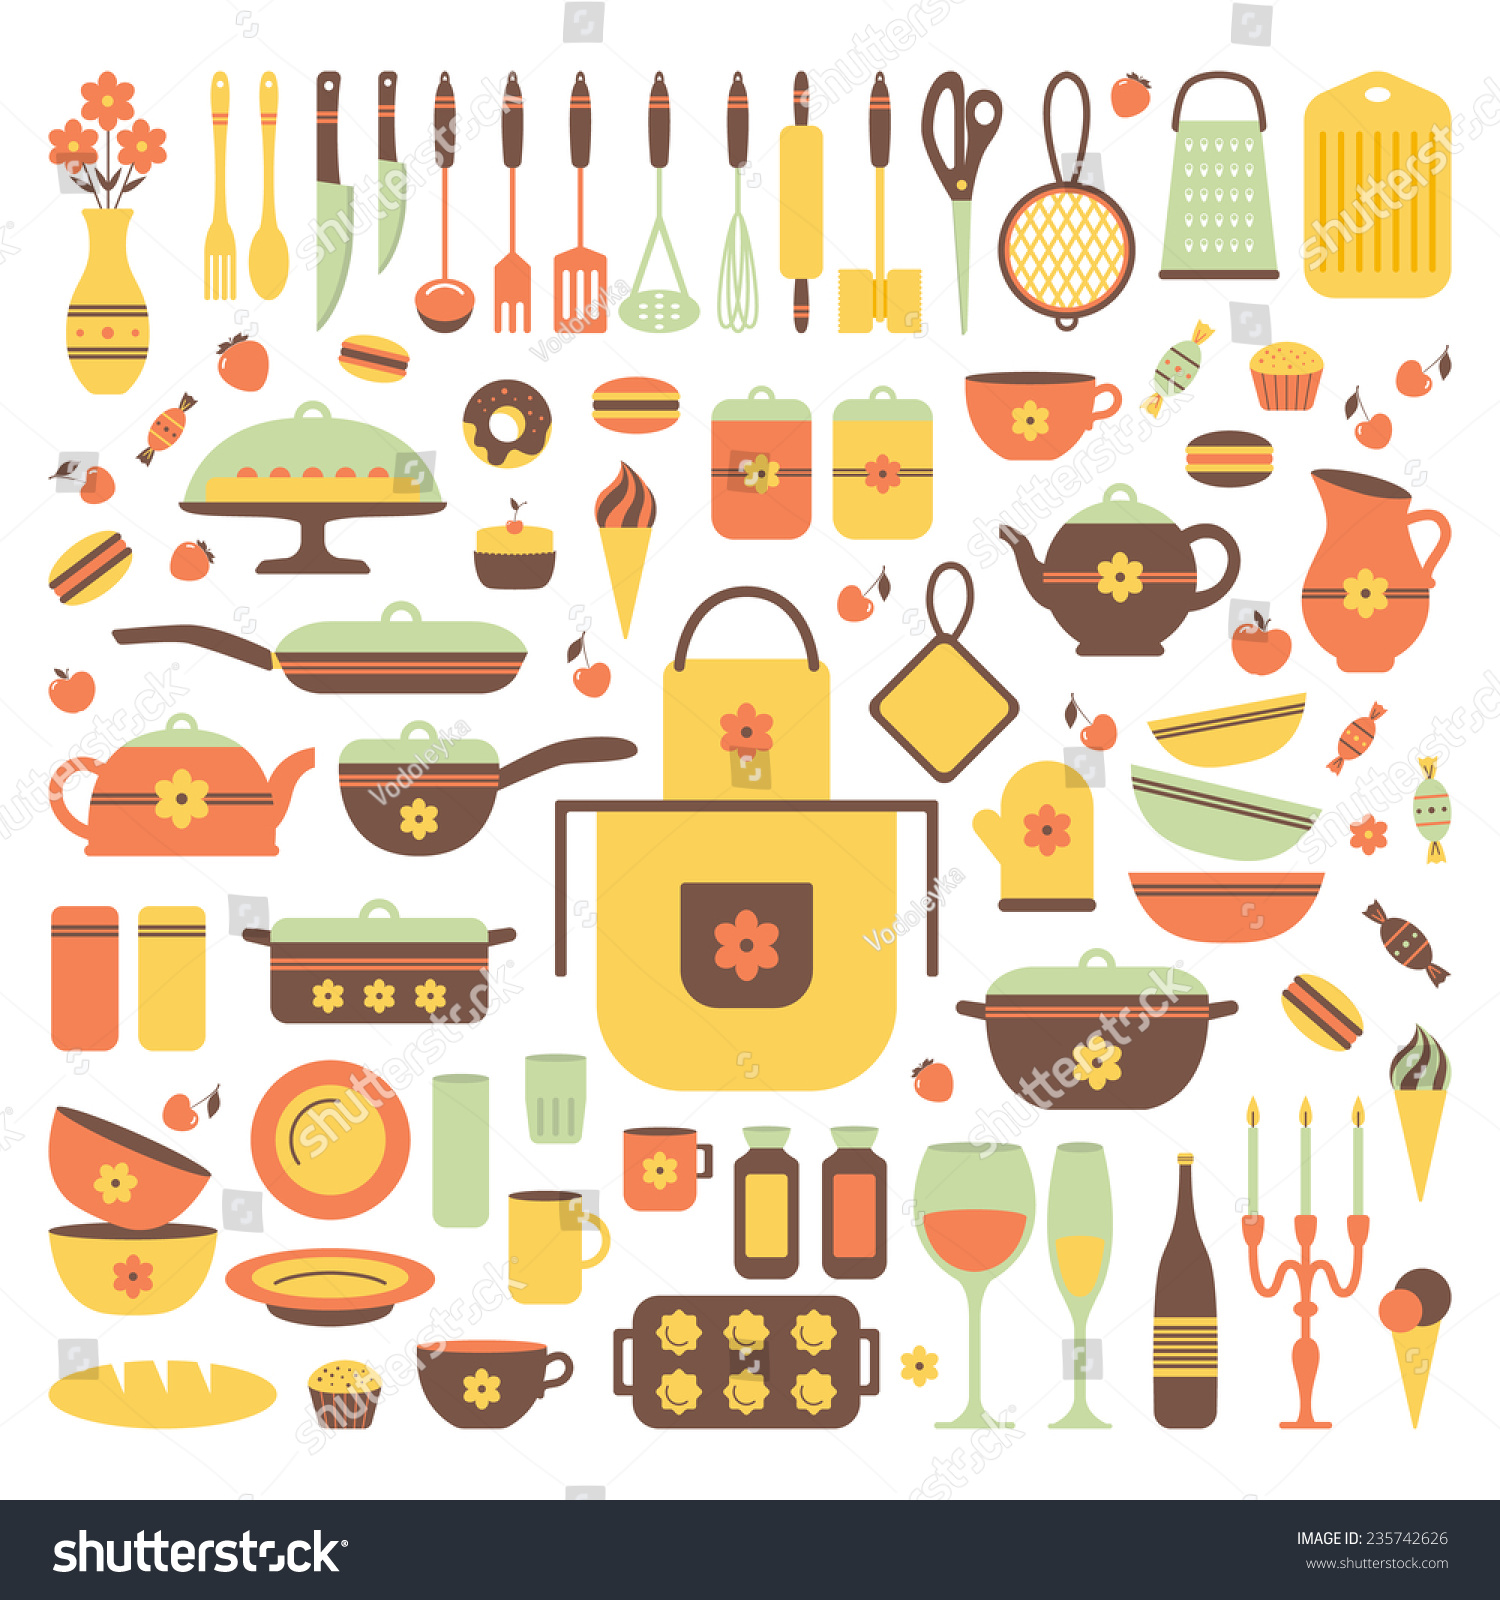 Kitchen Utensils Background: Set Of Kitchen Utensils And Food, Isolated Objects